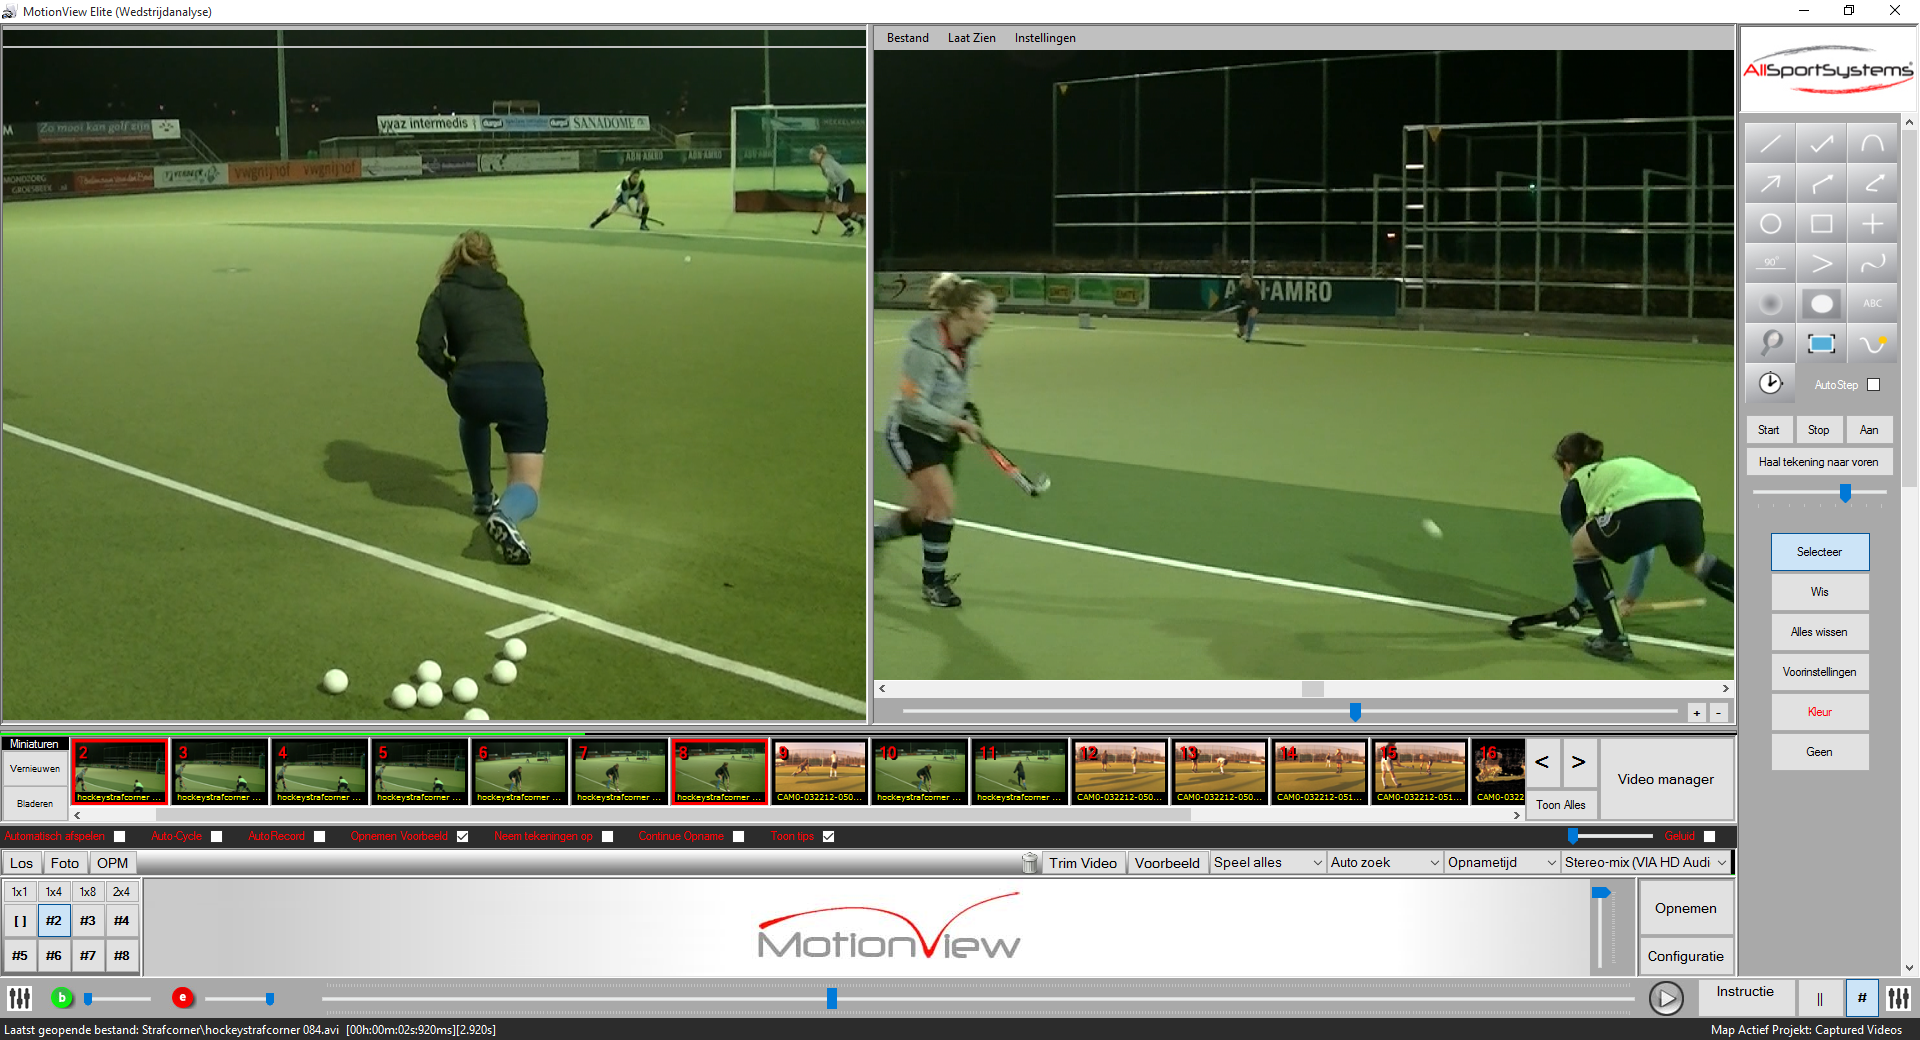 MotionView - Hockey - Video Analyse Software